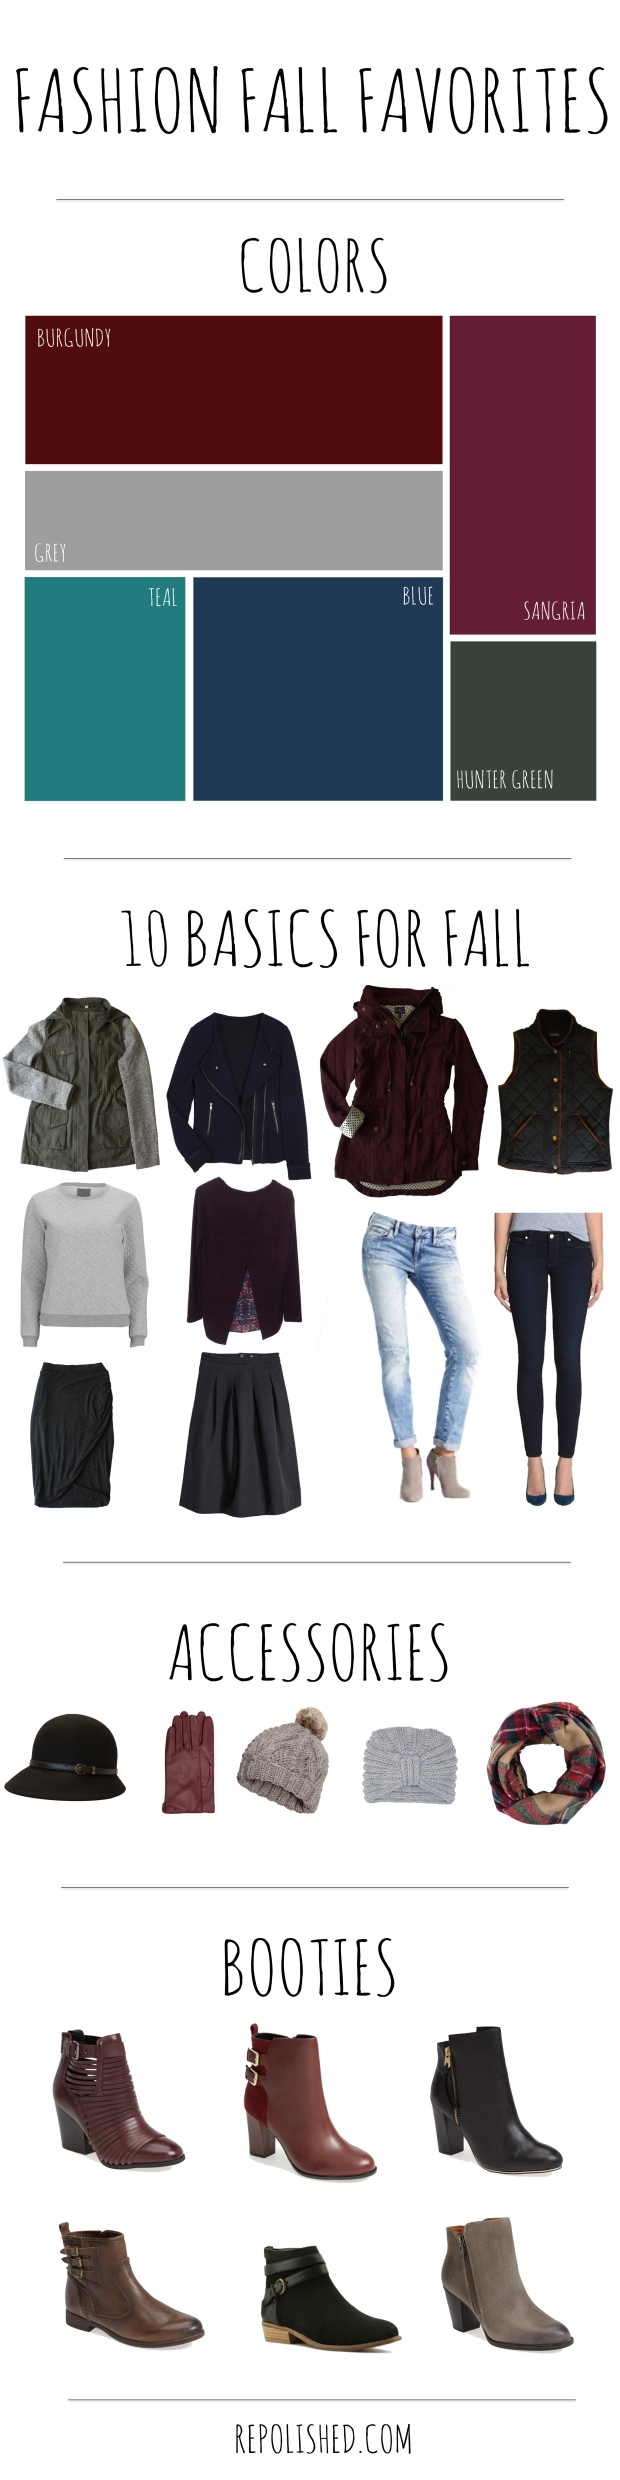 Fashion fall favorites: 10 basics, colors, accessories and booties for fall!   repolished.com